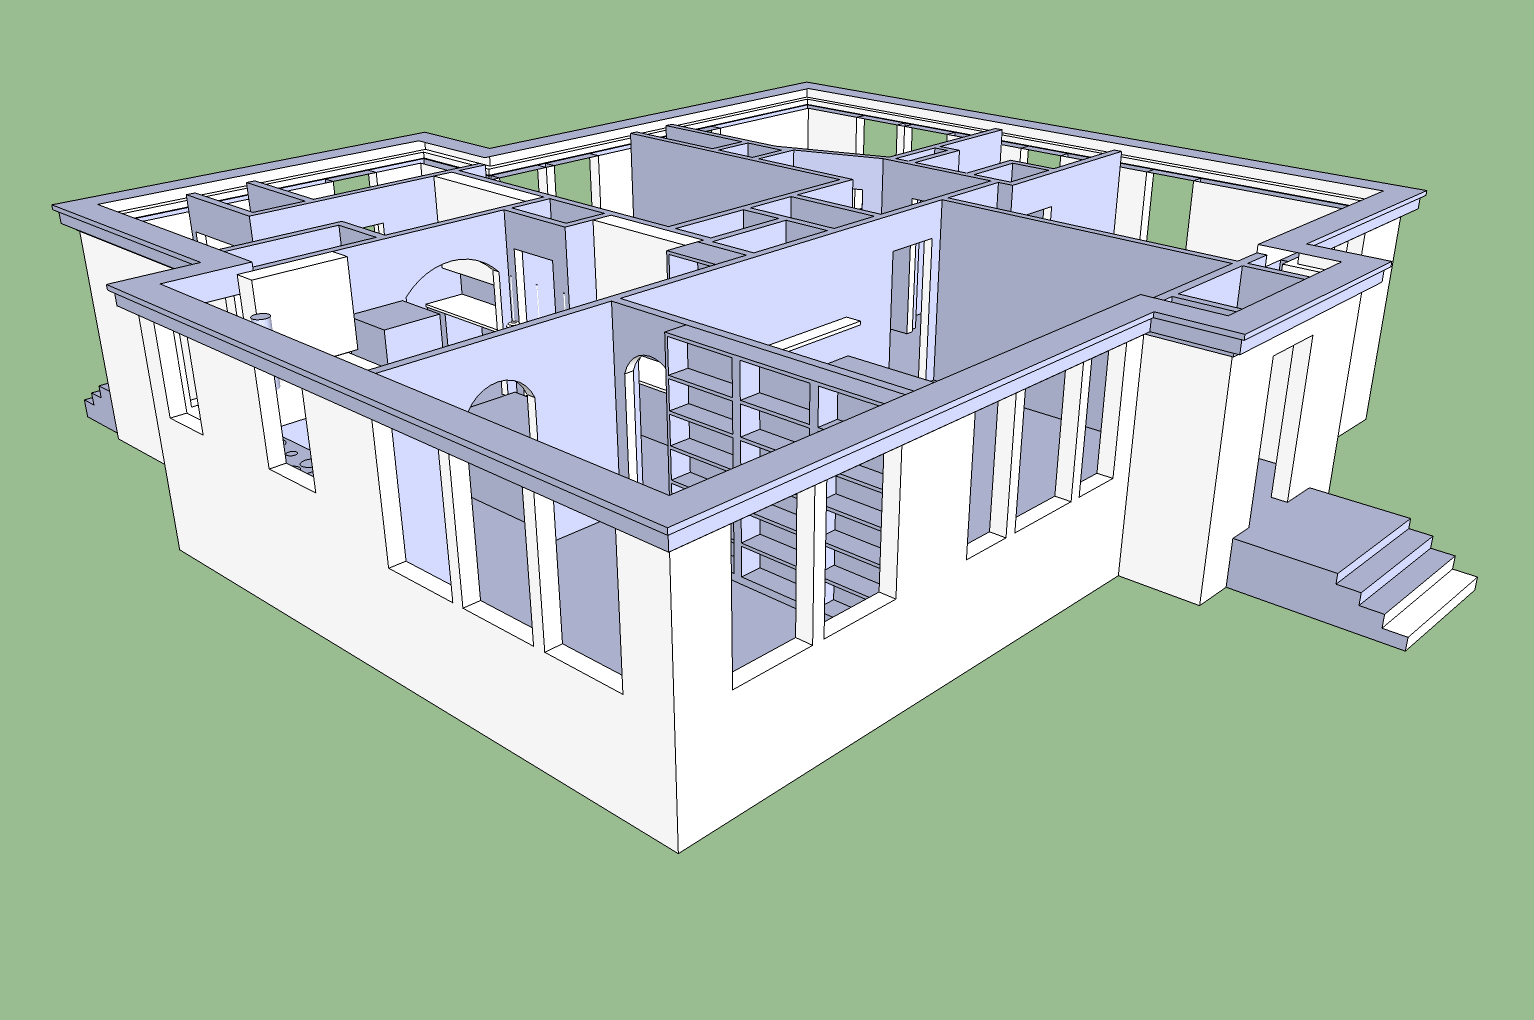 sketchup house plan creating your sketchup floor plans sketchup 3d floor plan sketchup 3d. Black Bedroom Furniture Sets. Home Design Ideas